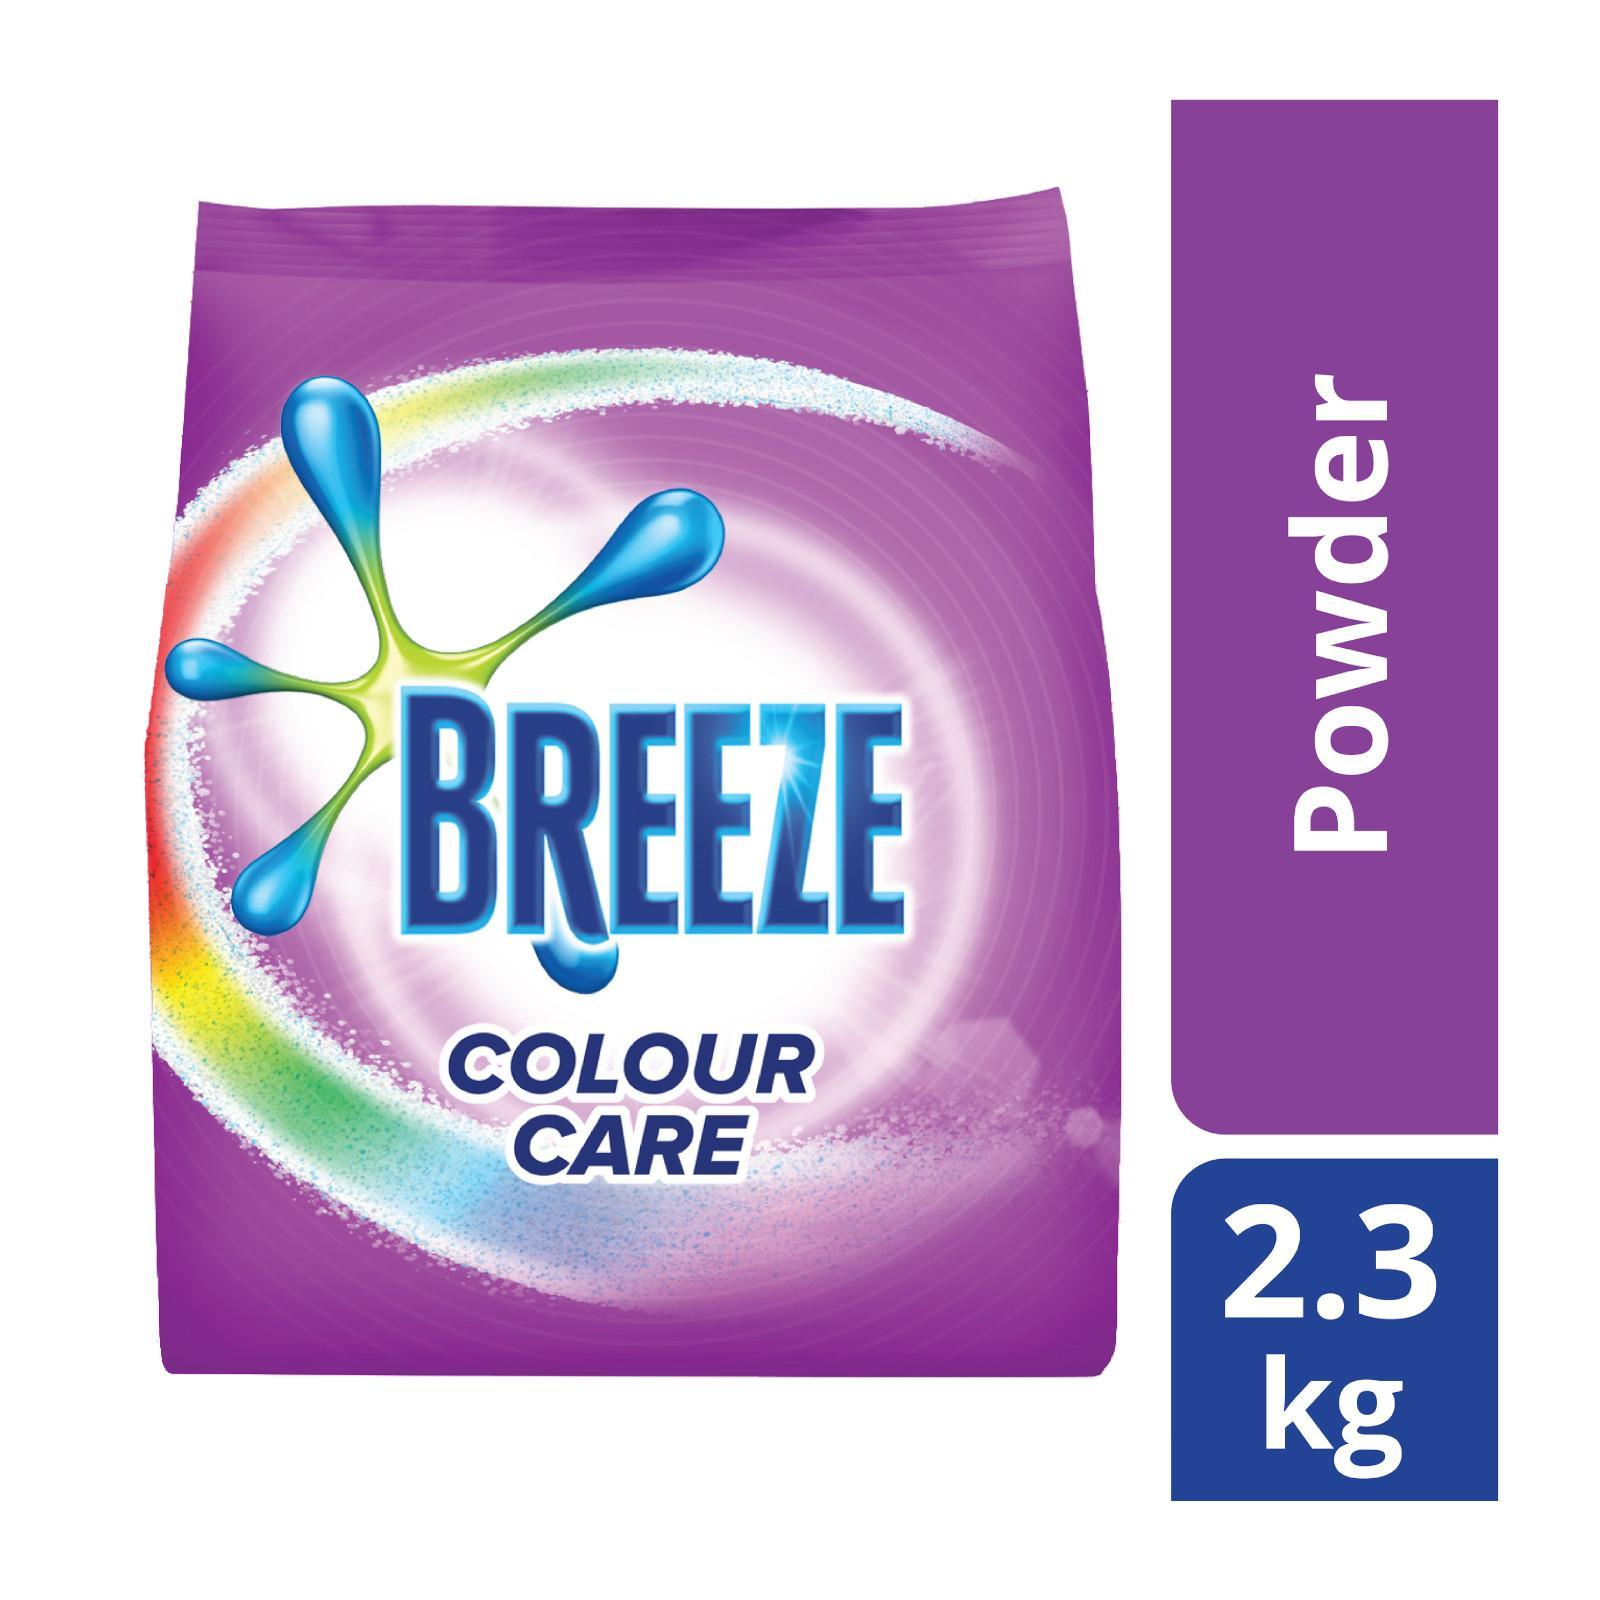 BREEZE Laundry Powder Detergent Colour Care 2.3kg